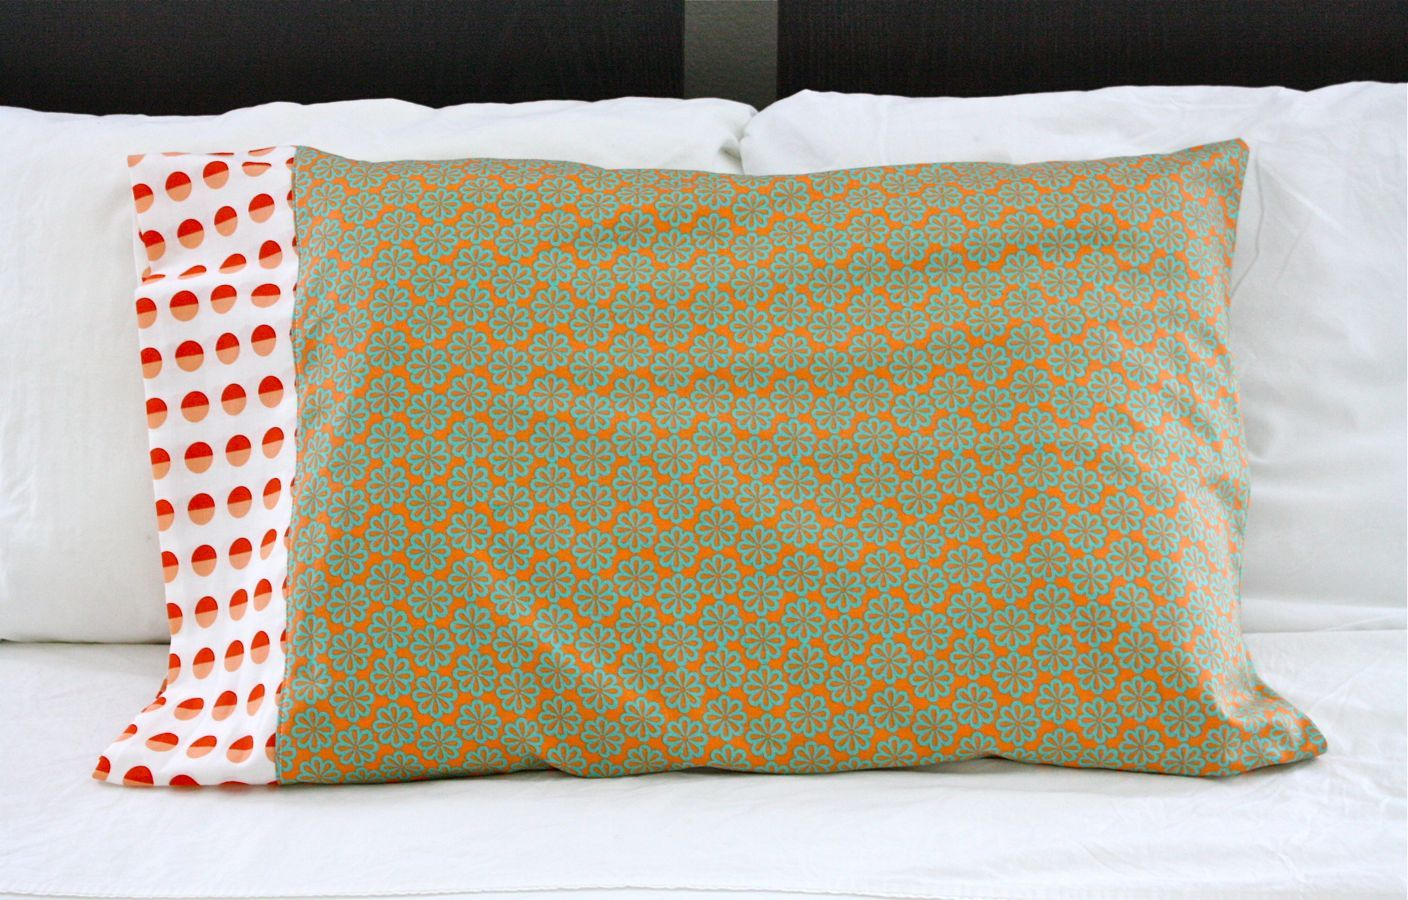 Conkerr Cancer Pillowcase Tutorial Conkerr Cancer Pillowcases  Made *so Fast And So Cute